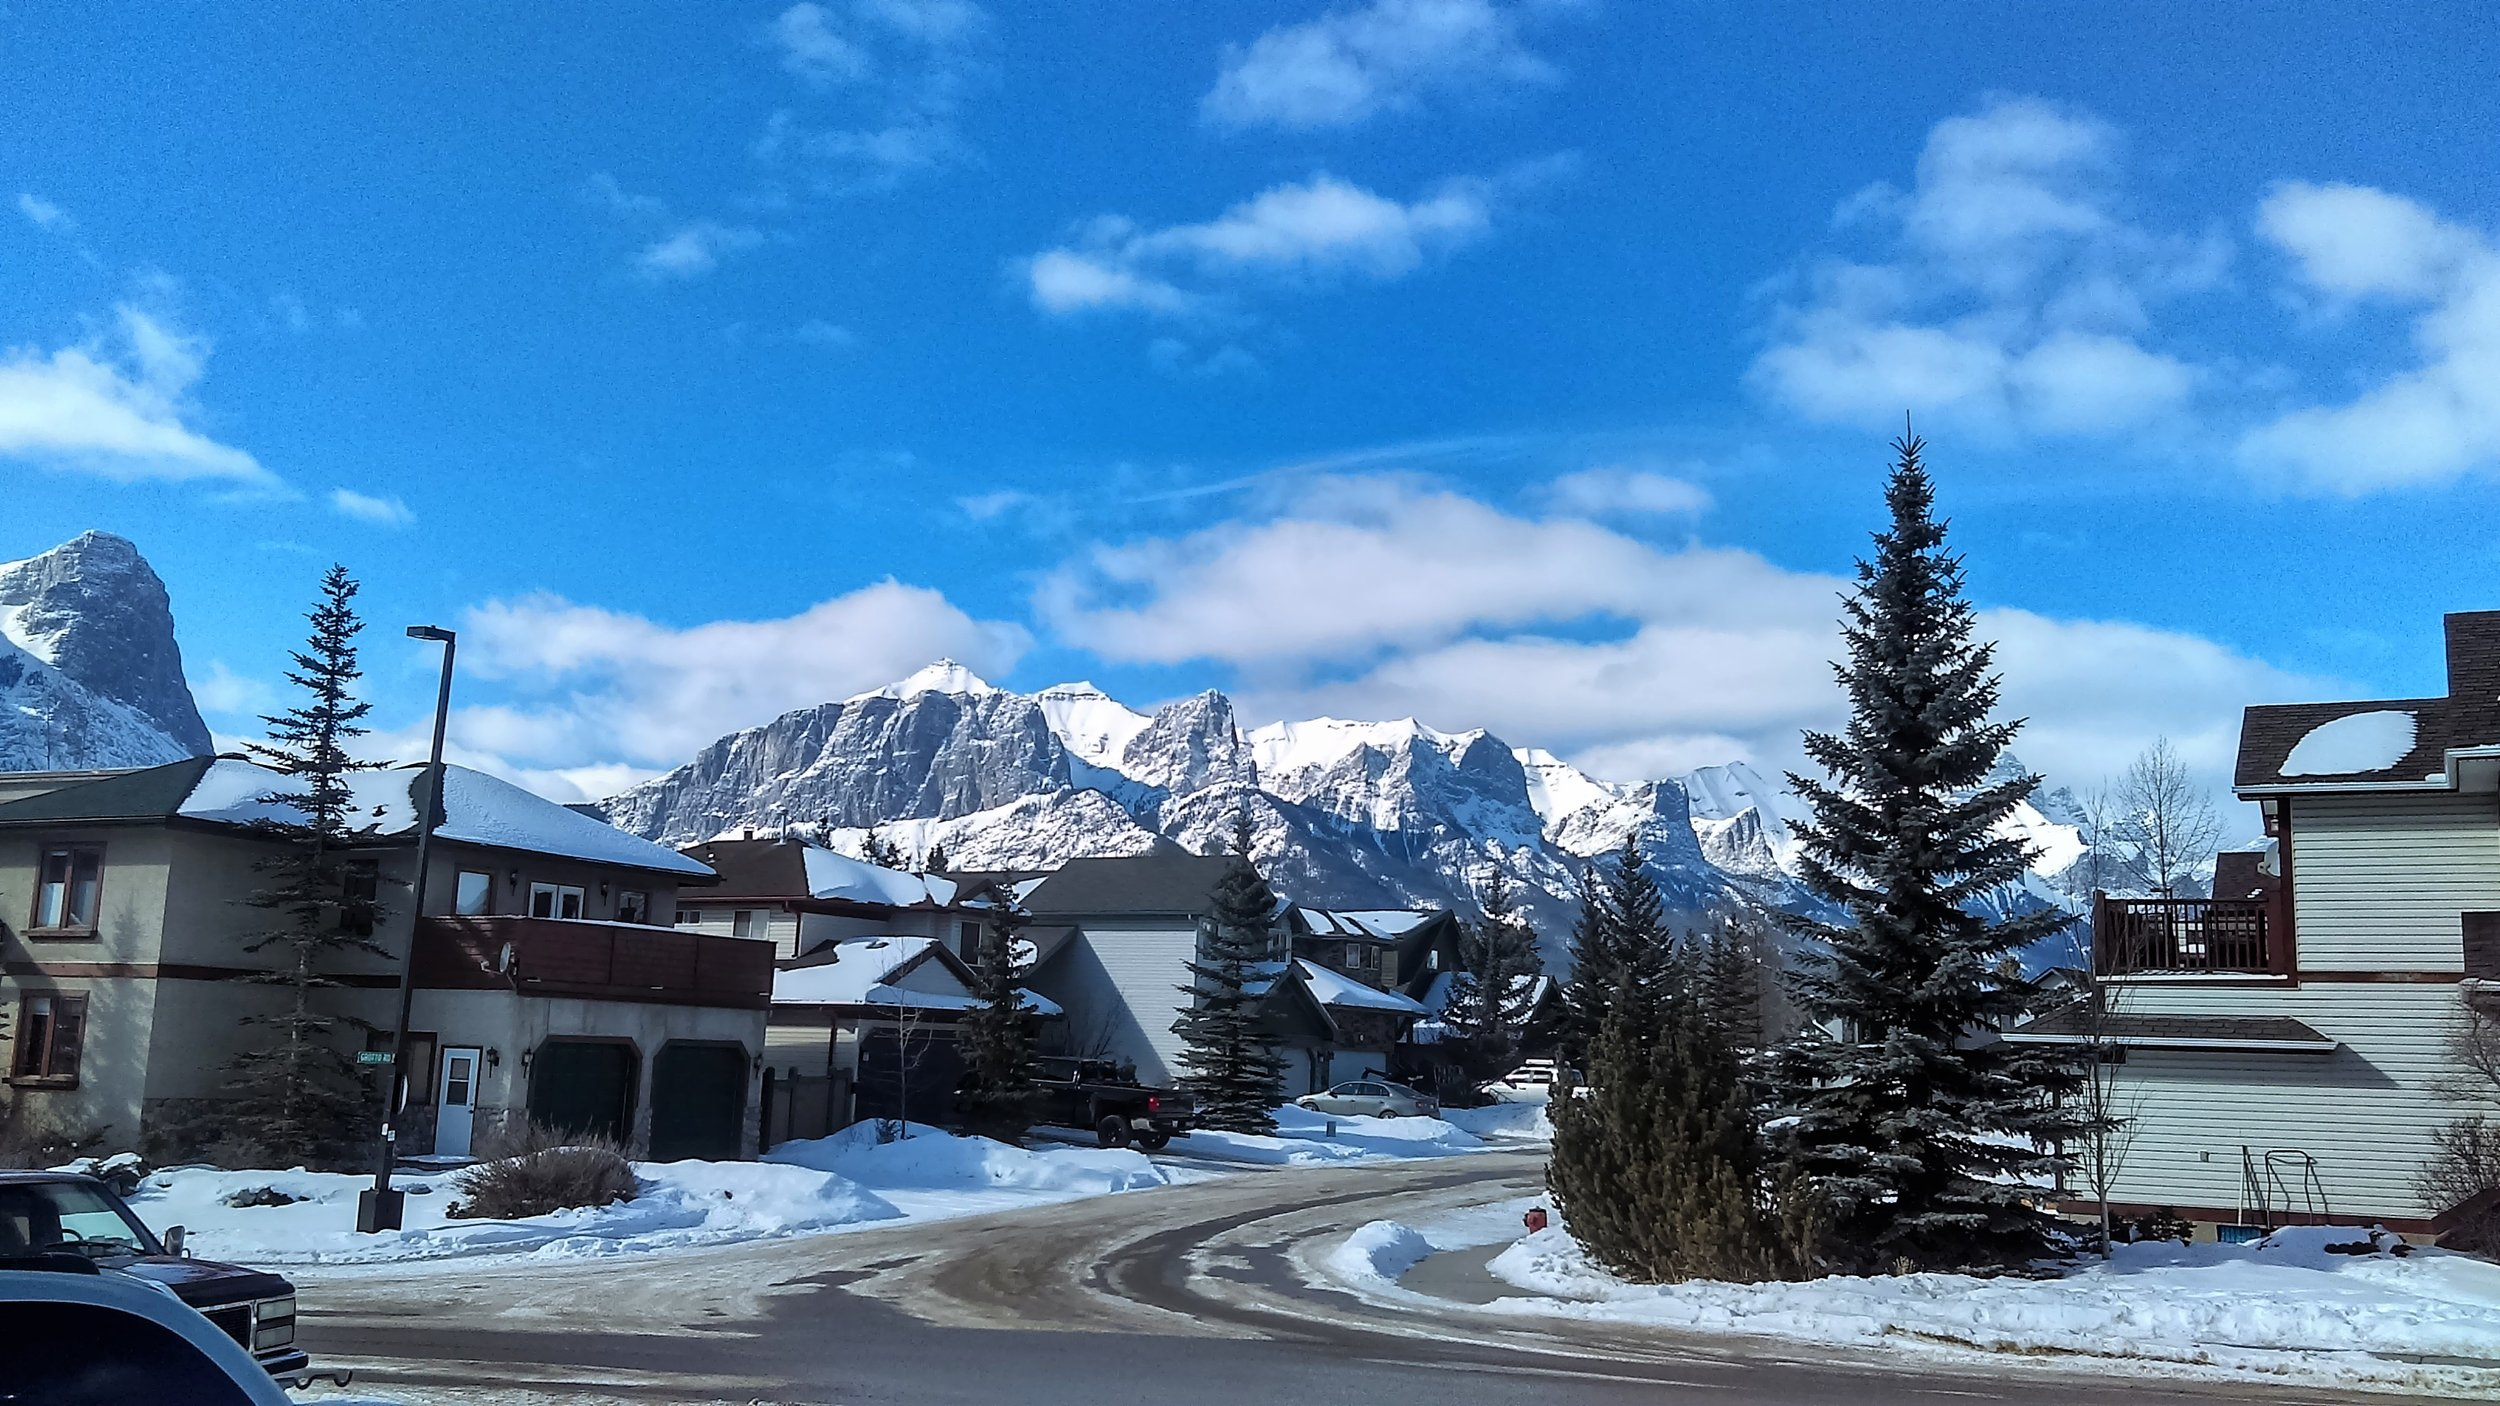 The view as I walk outside my house in Cougar Creek, Canmore.